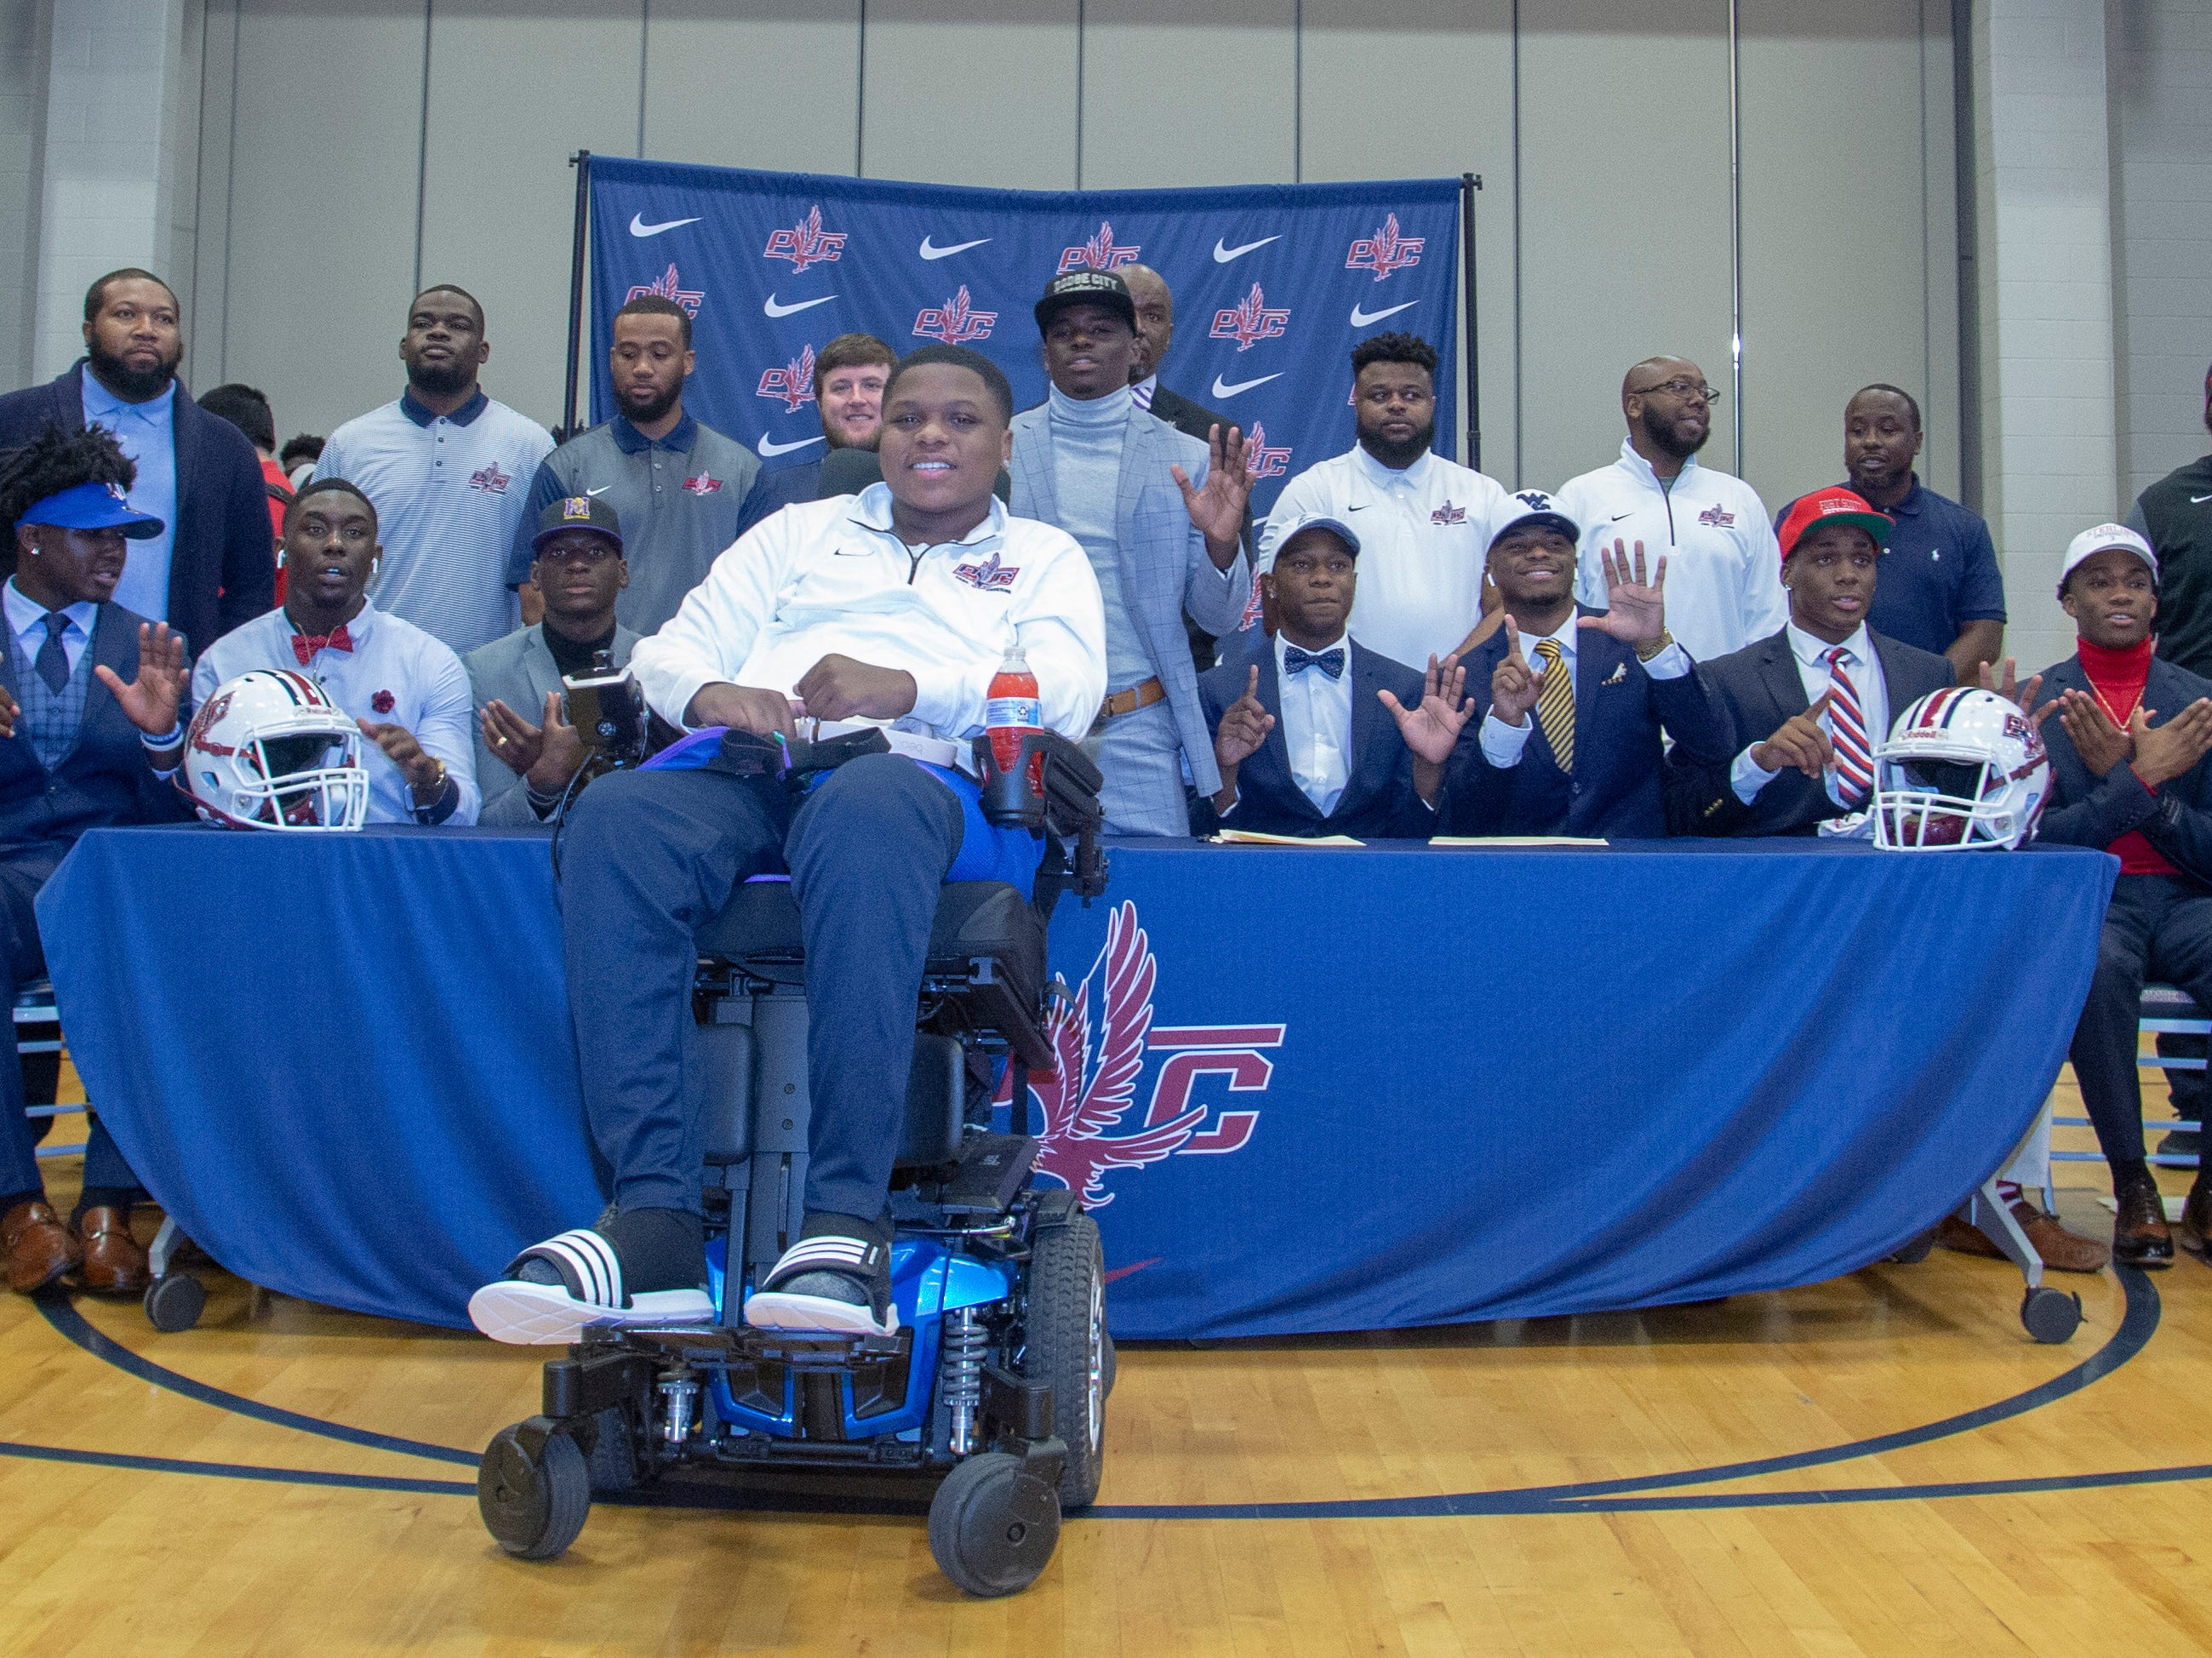 The largest signing class for football at Park Crossing gathers for a photo together.